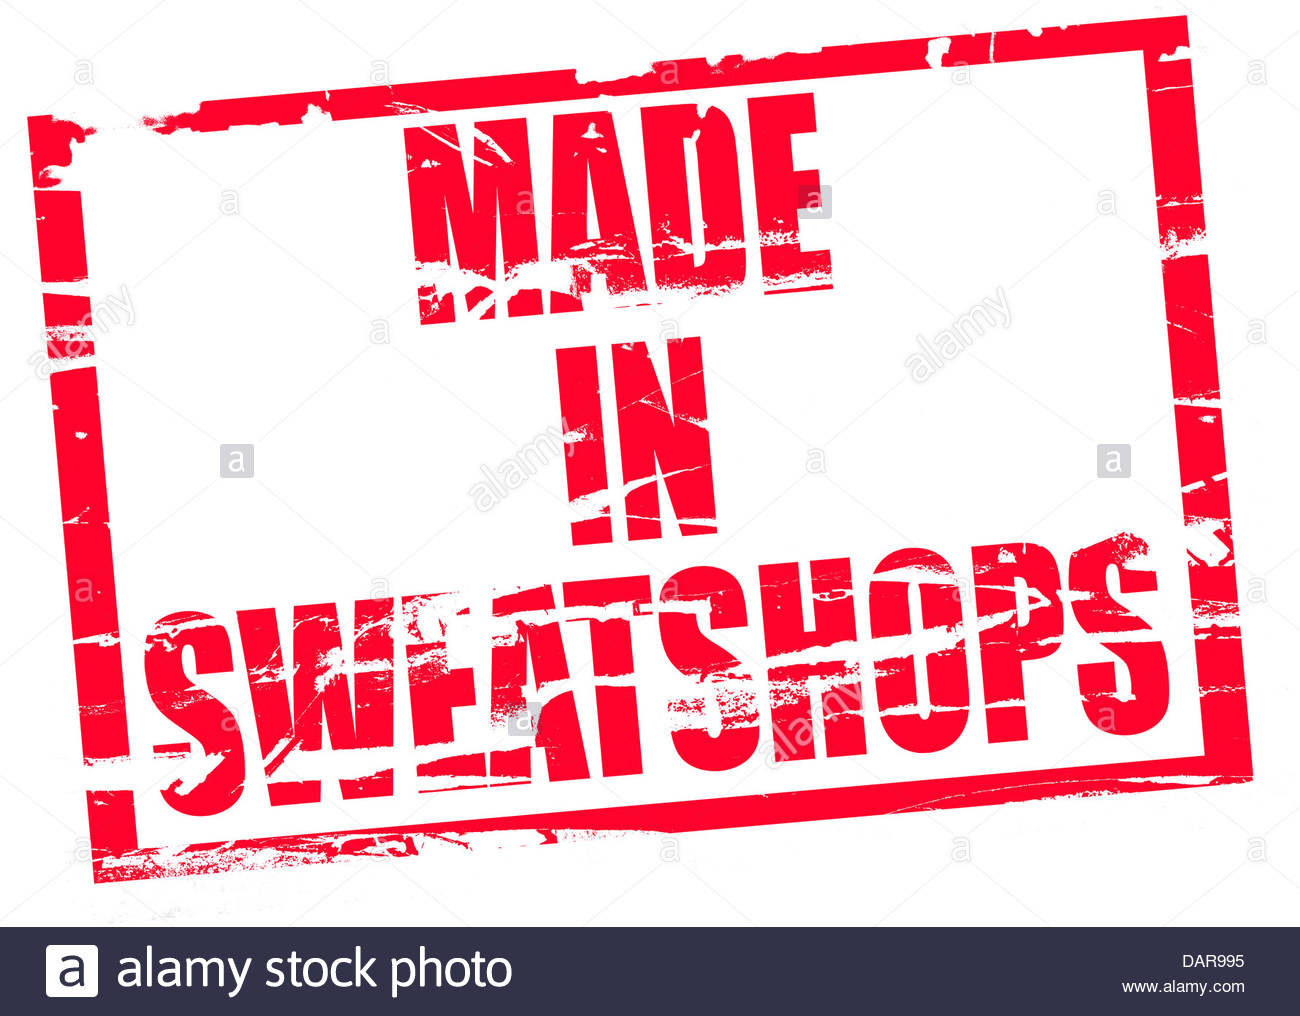 Digital composite Rubber stamp. Made in sweatshops - Stock Image